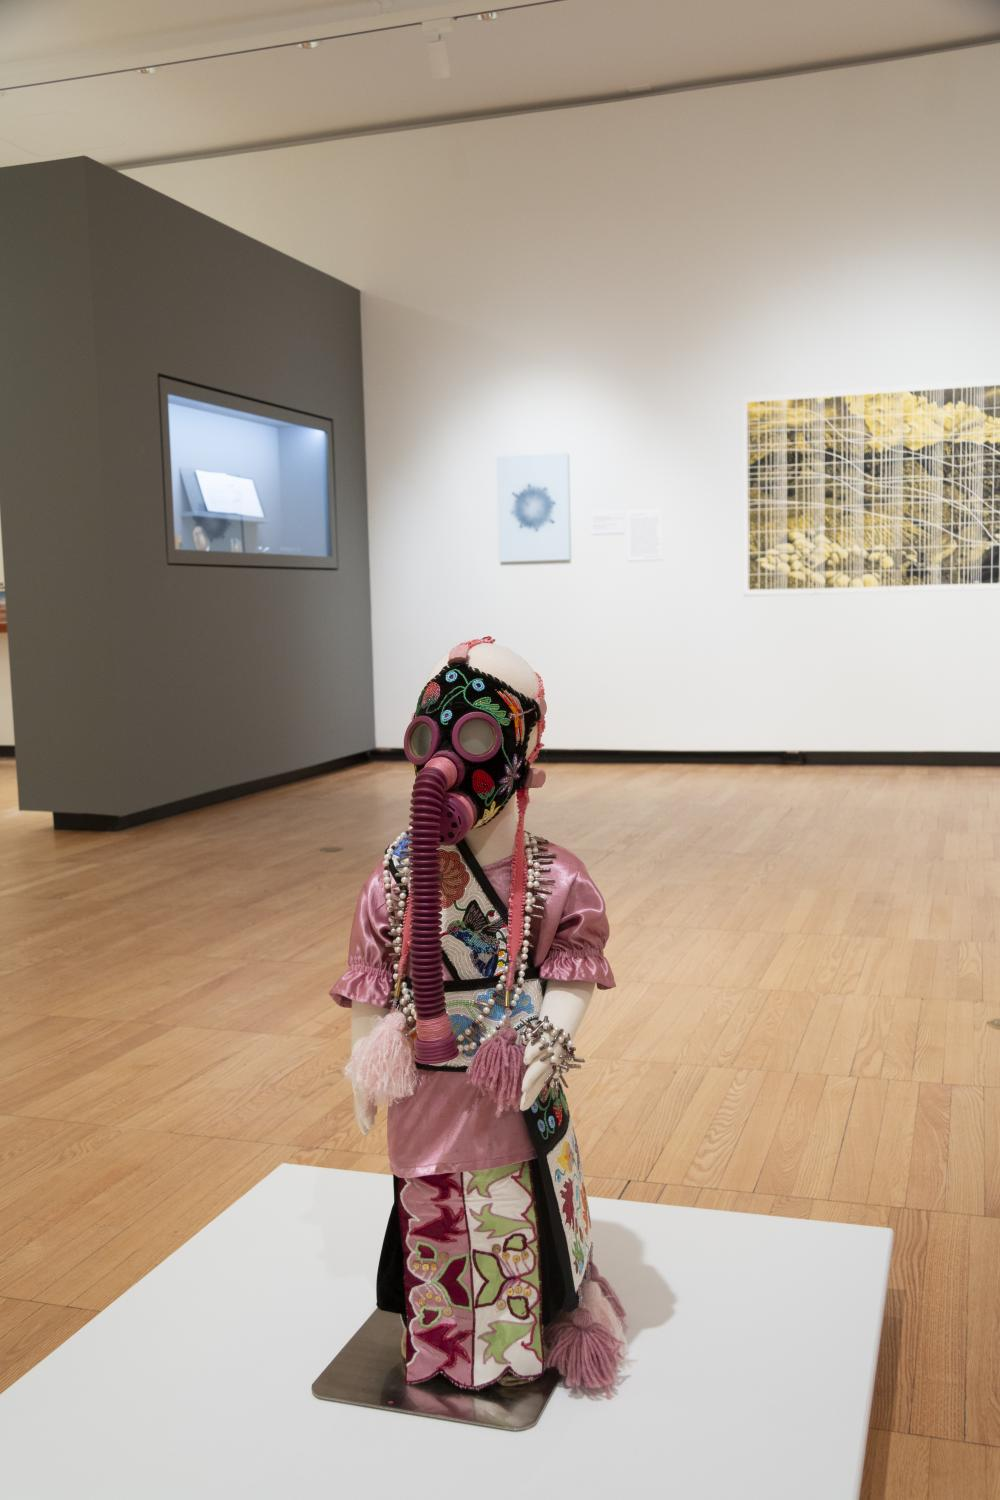 Image of a small mannequin dressed in a beaded satin dress with ornately decorated gas mask, created by artist Naomi Bebo. In background is a grey wall with small objects and a yellow image of a graph overlaying an image of Bears Ears national monument.